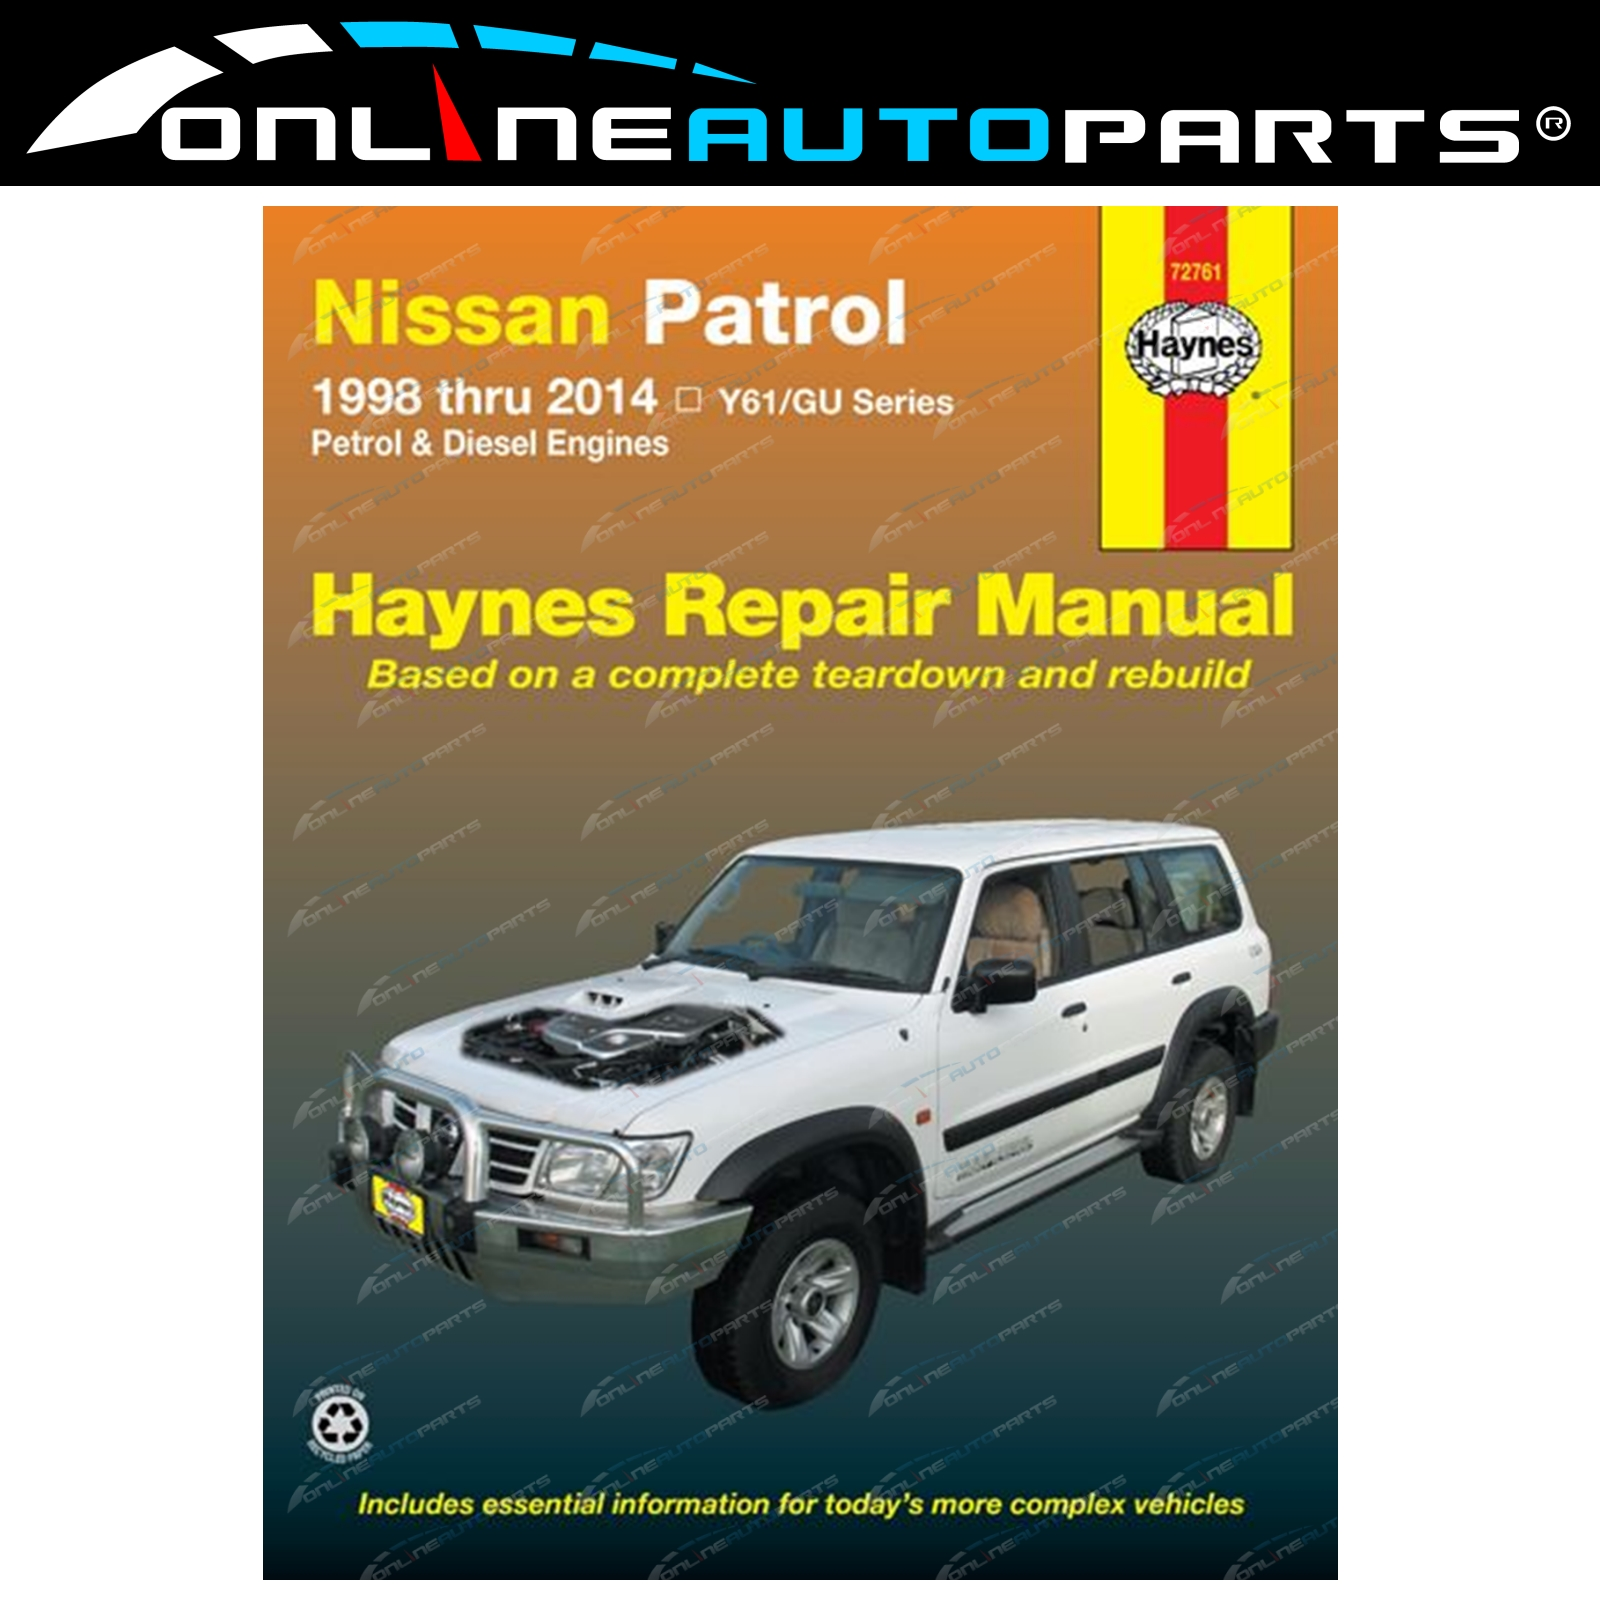 Haynes Car Repair Manual Book for Nissan Patrol GU Y61 1997-2014 Petrol +  Diesel